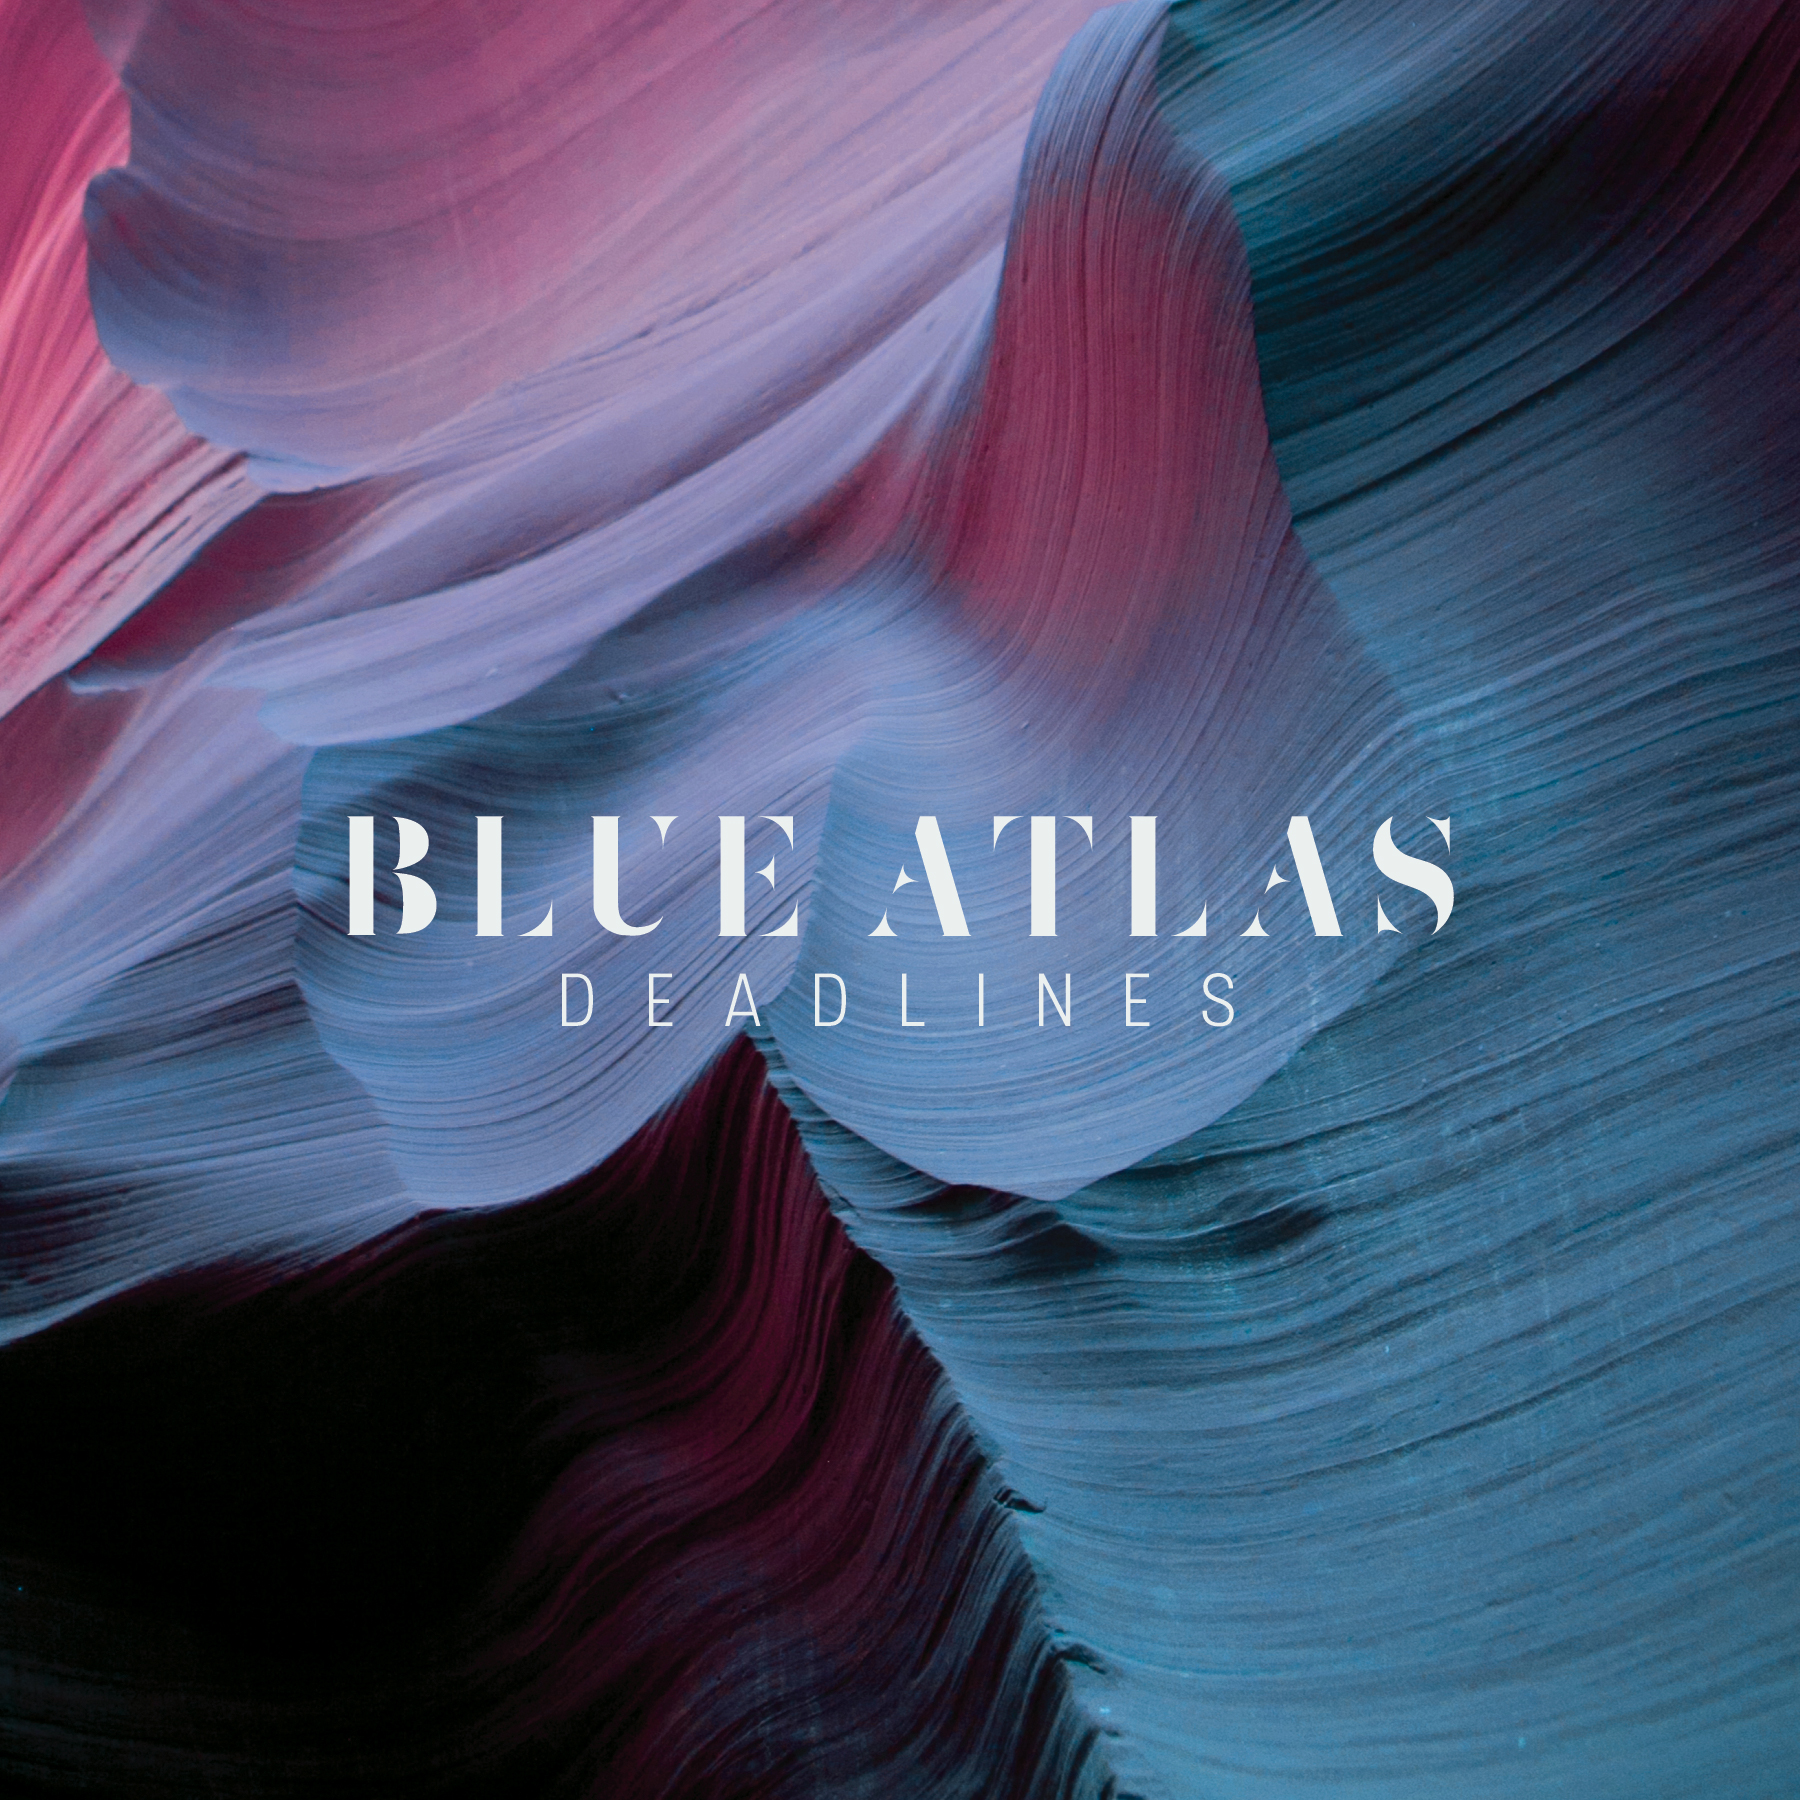 Blue-Atlas-Deadlines-1800